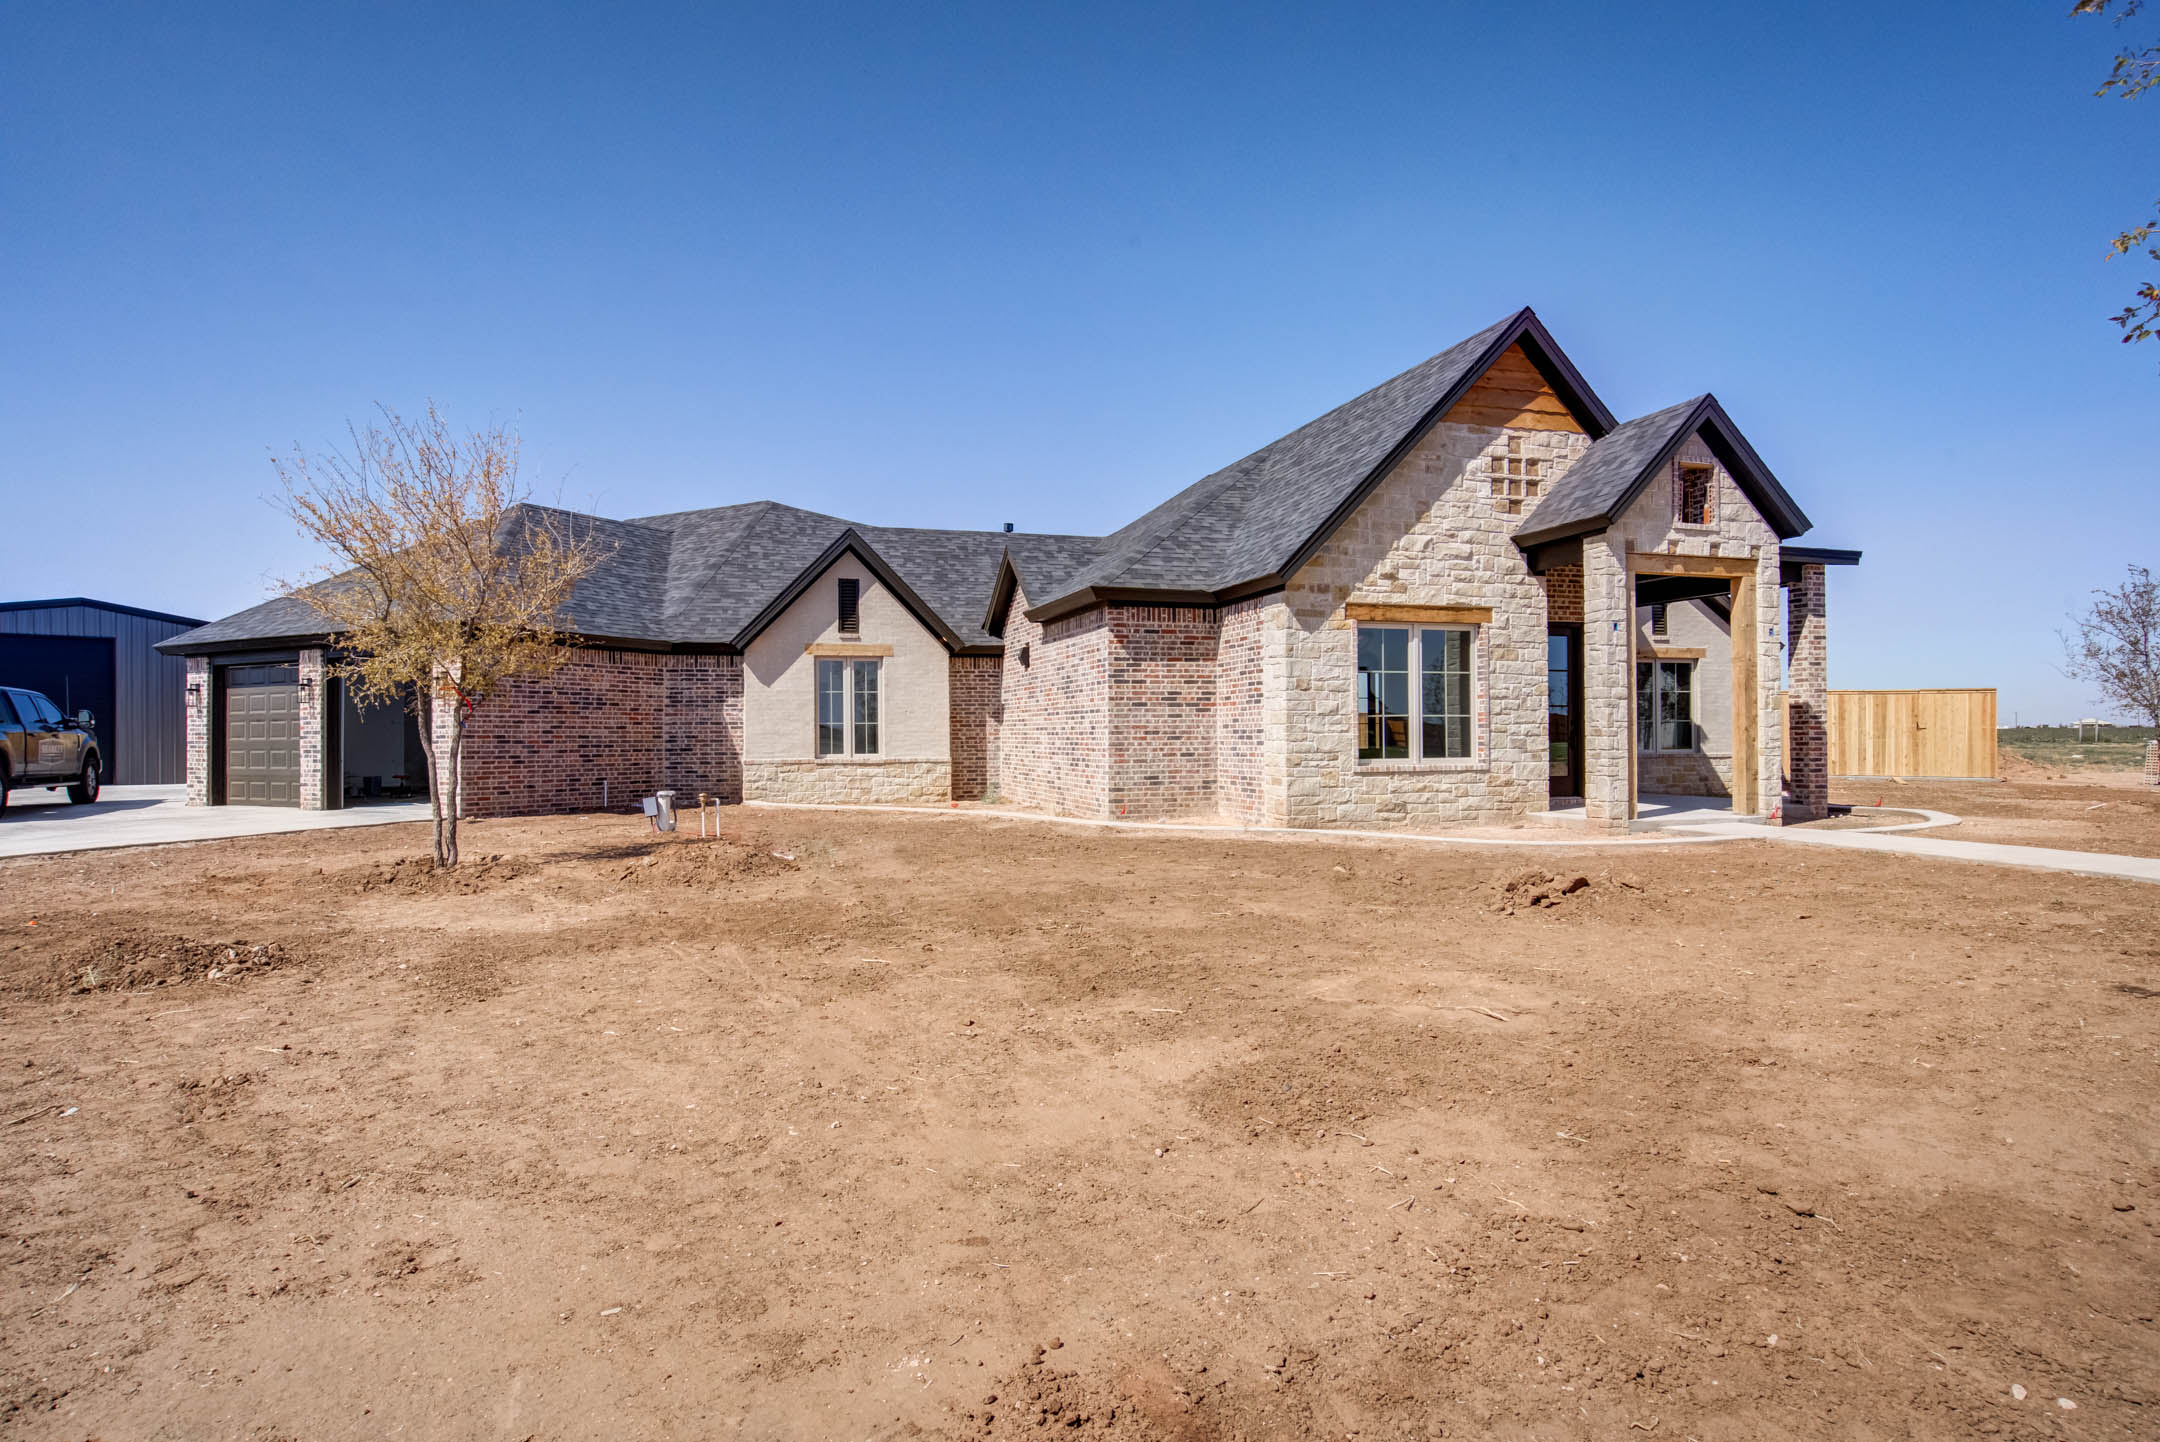 Exterior of beautiful new home for sale in New Home, Texas.